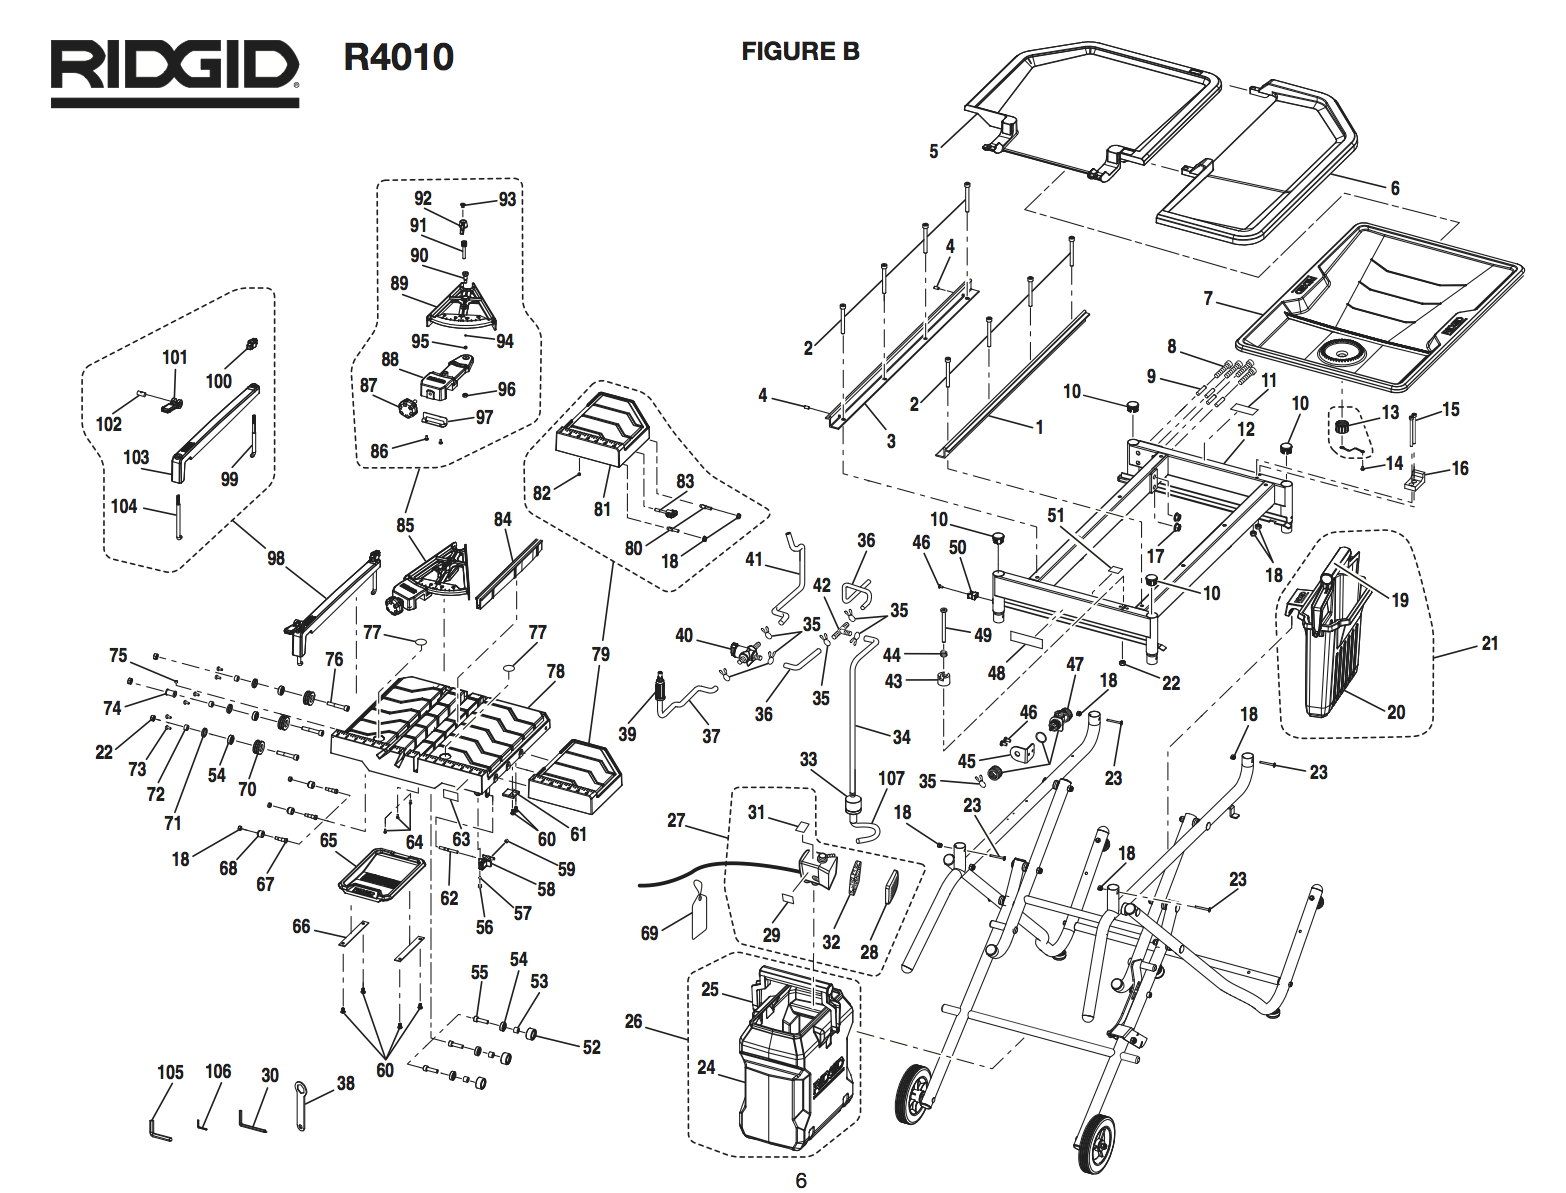 ridgid generator wiring diagrams ridgid table saw wiring